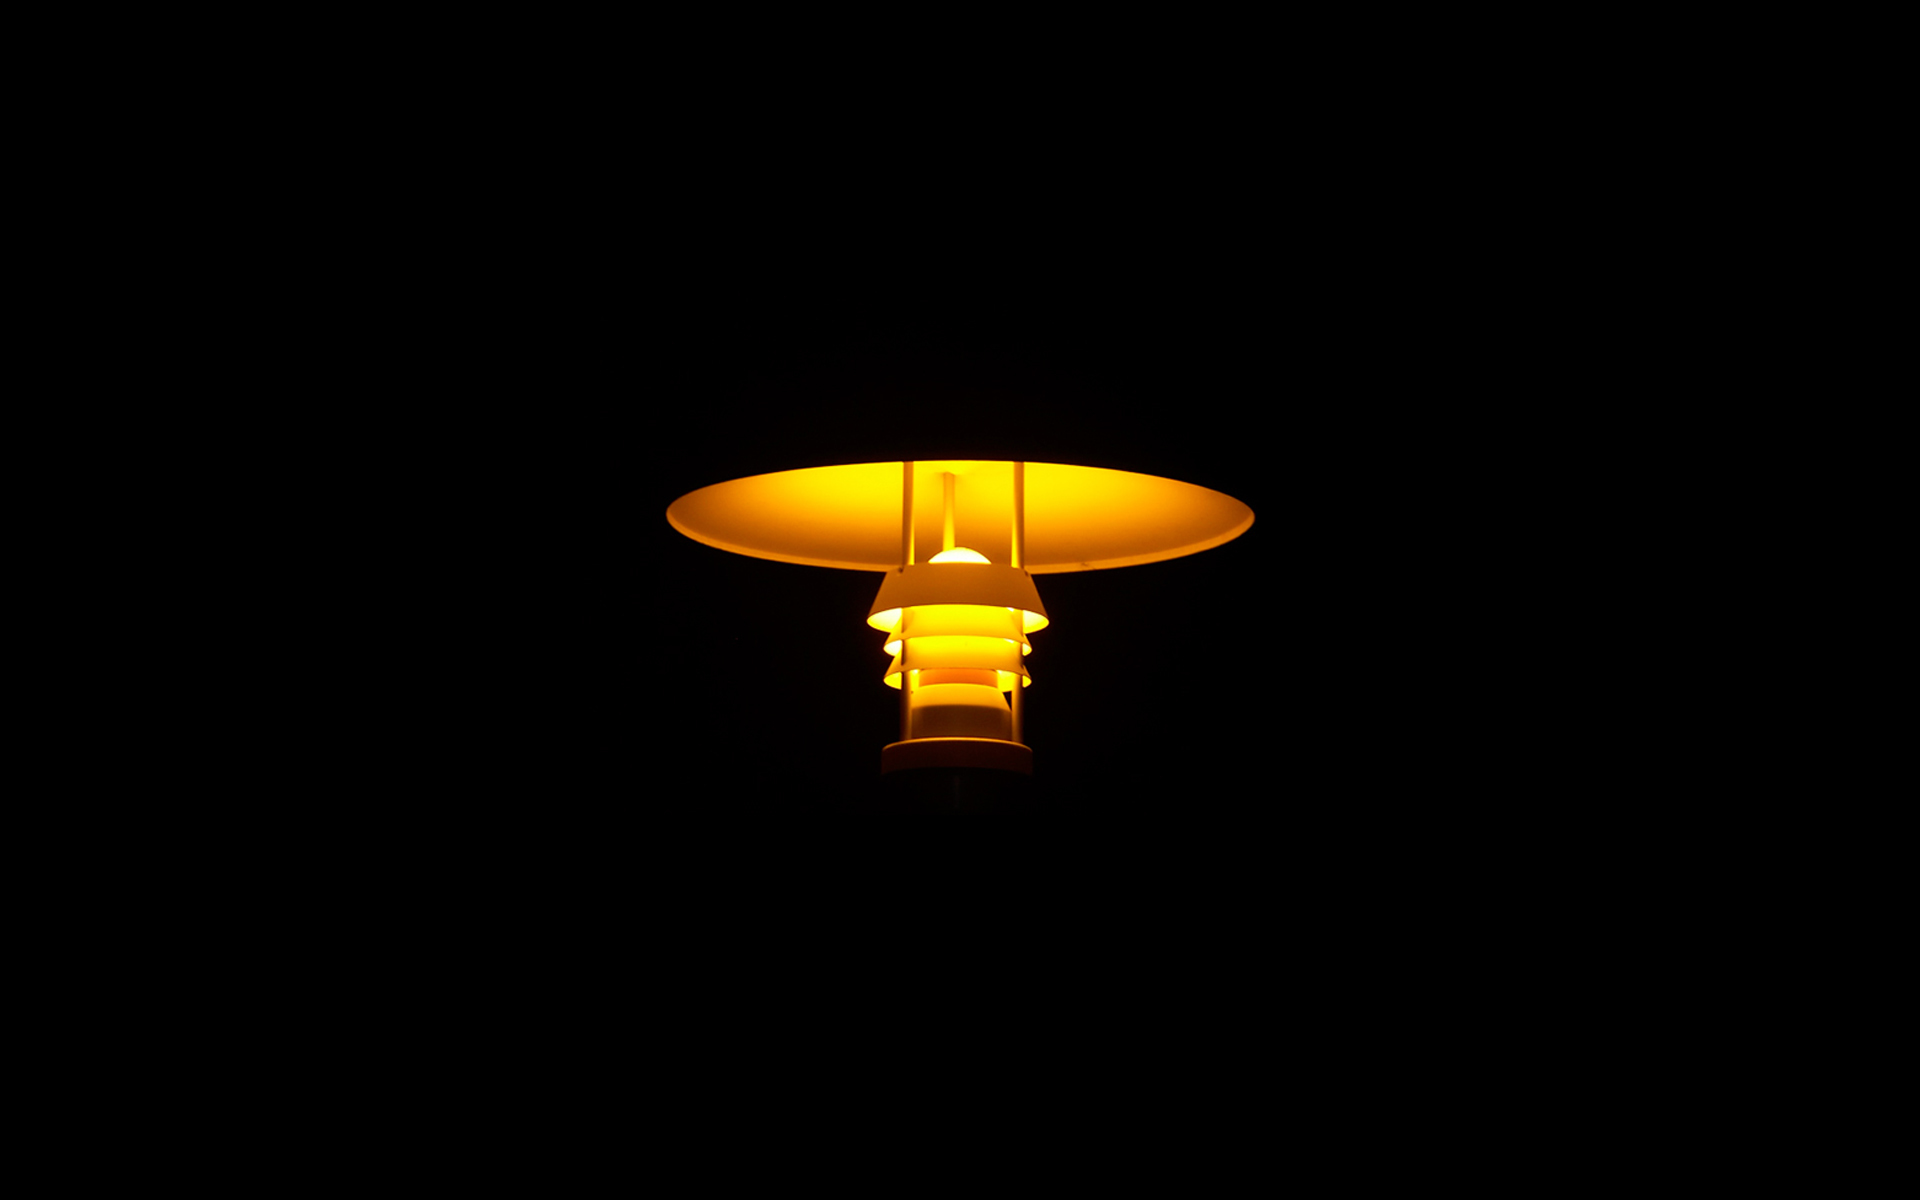 lamp wallpaper 53970